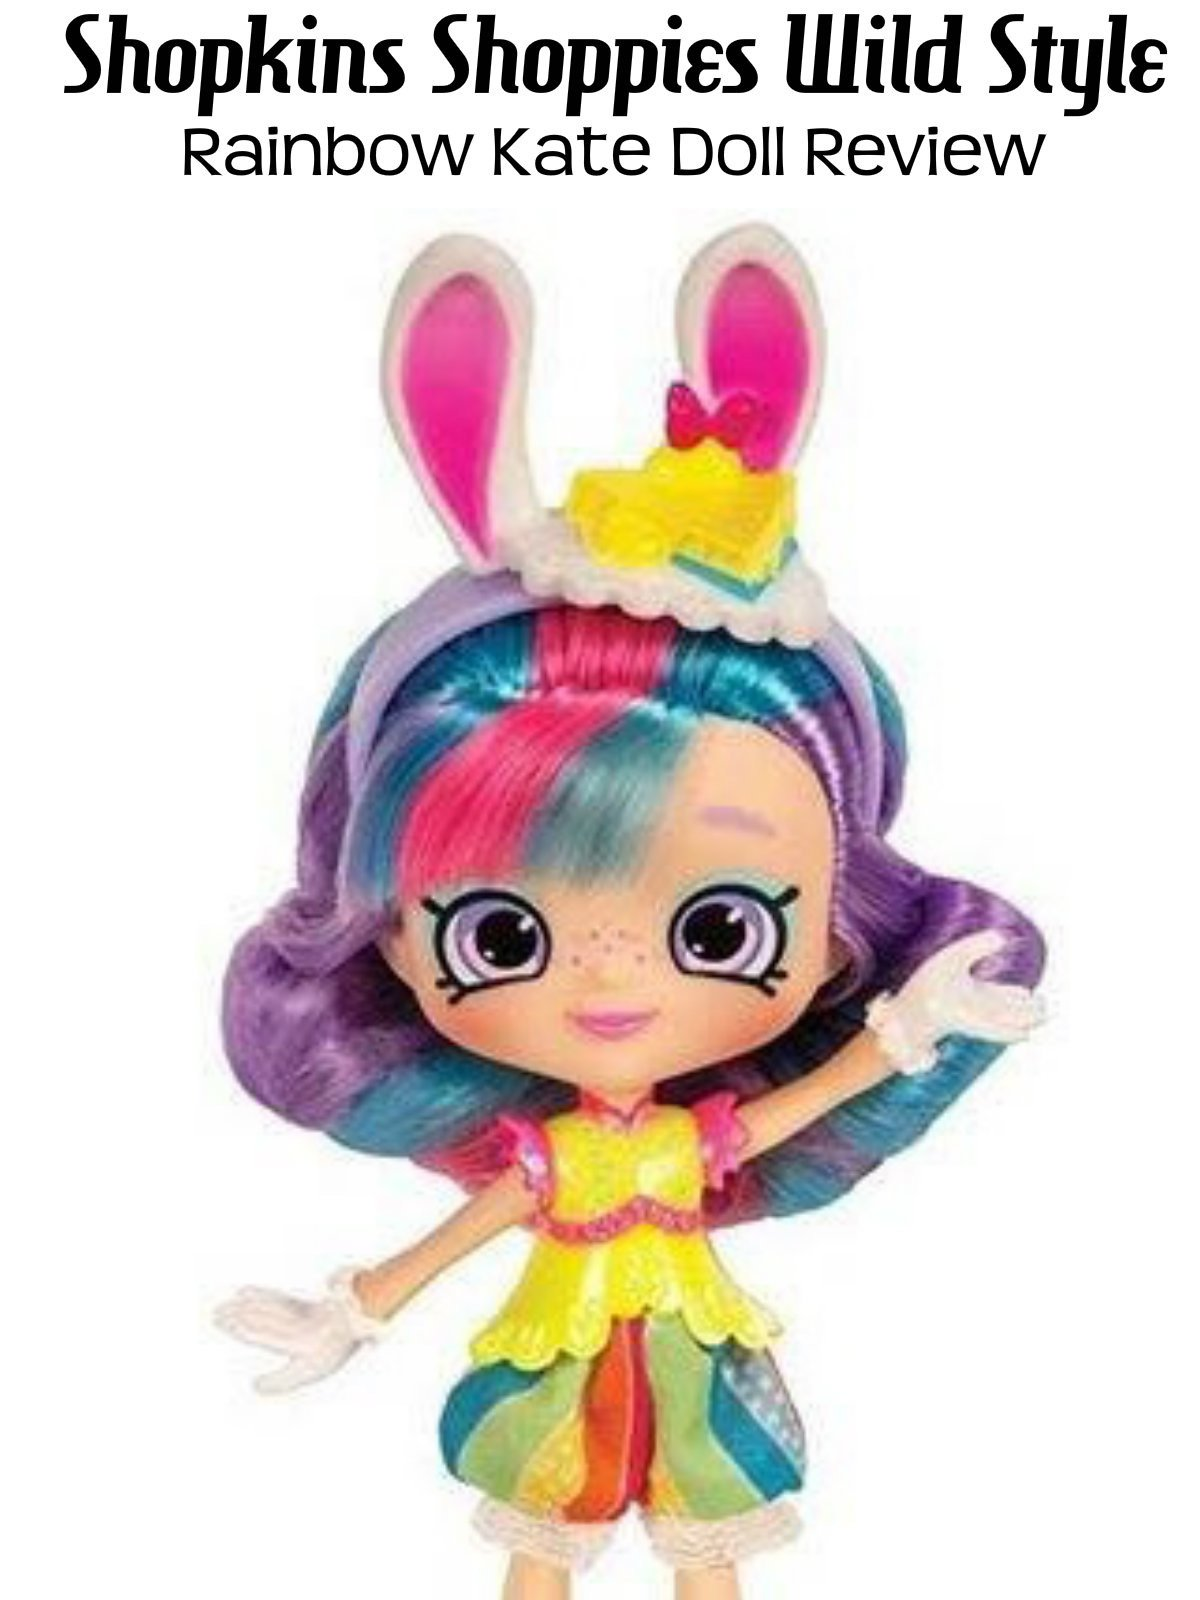 Review: Shopkins Shoppies Wild Style Rainbow Kate Doll Review